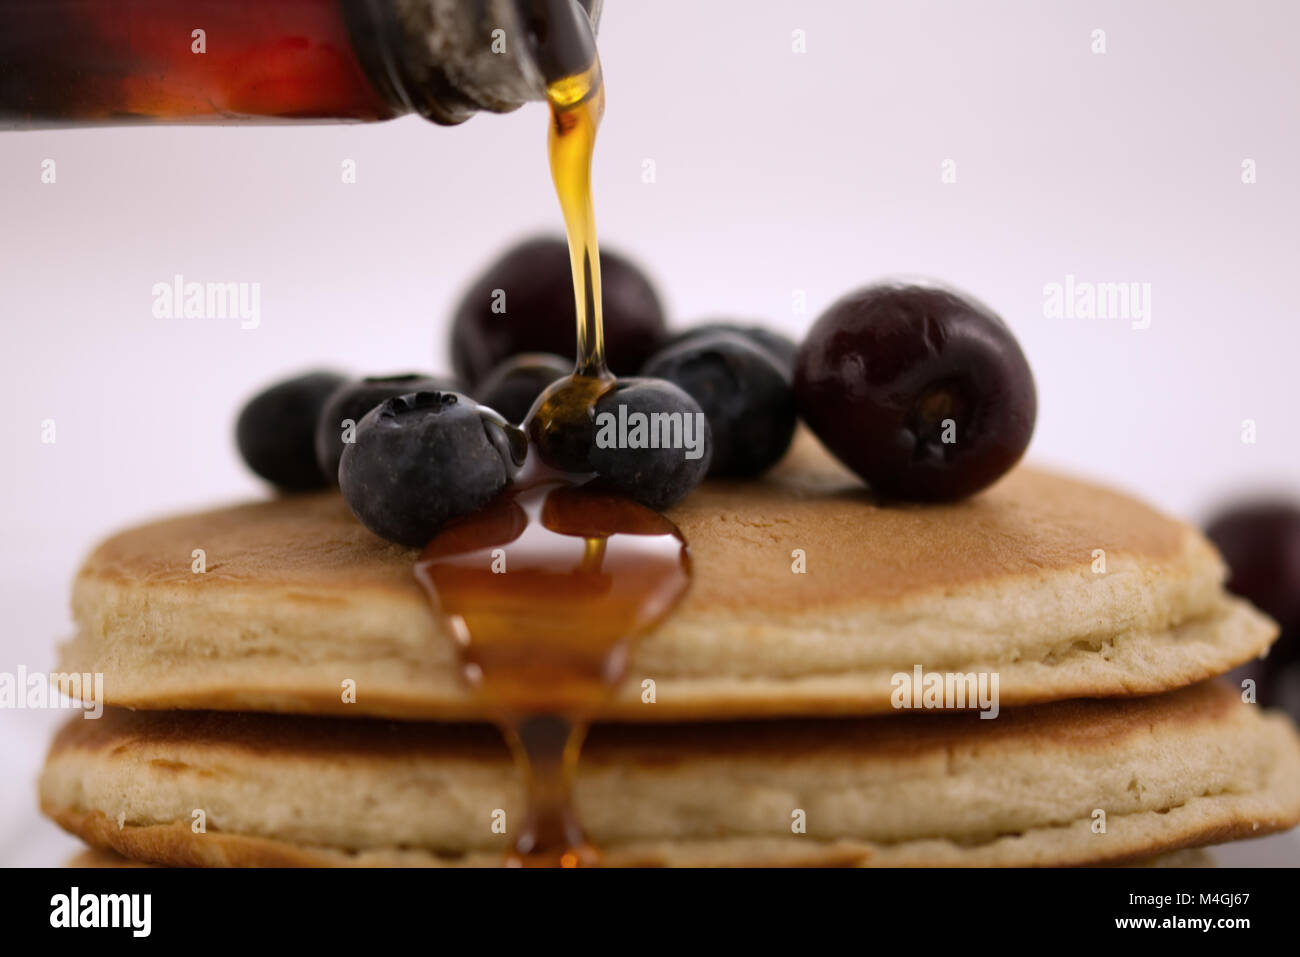 Breakfast pancakes with blueberries, cherries and maple syrup isolated on a white background with very shallow depth - Stock Image